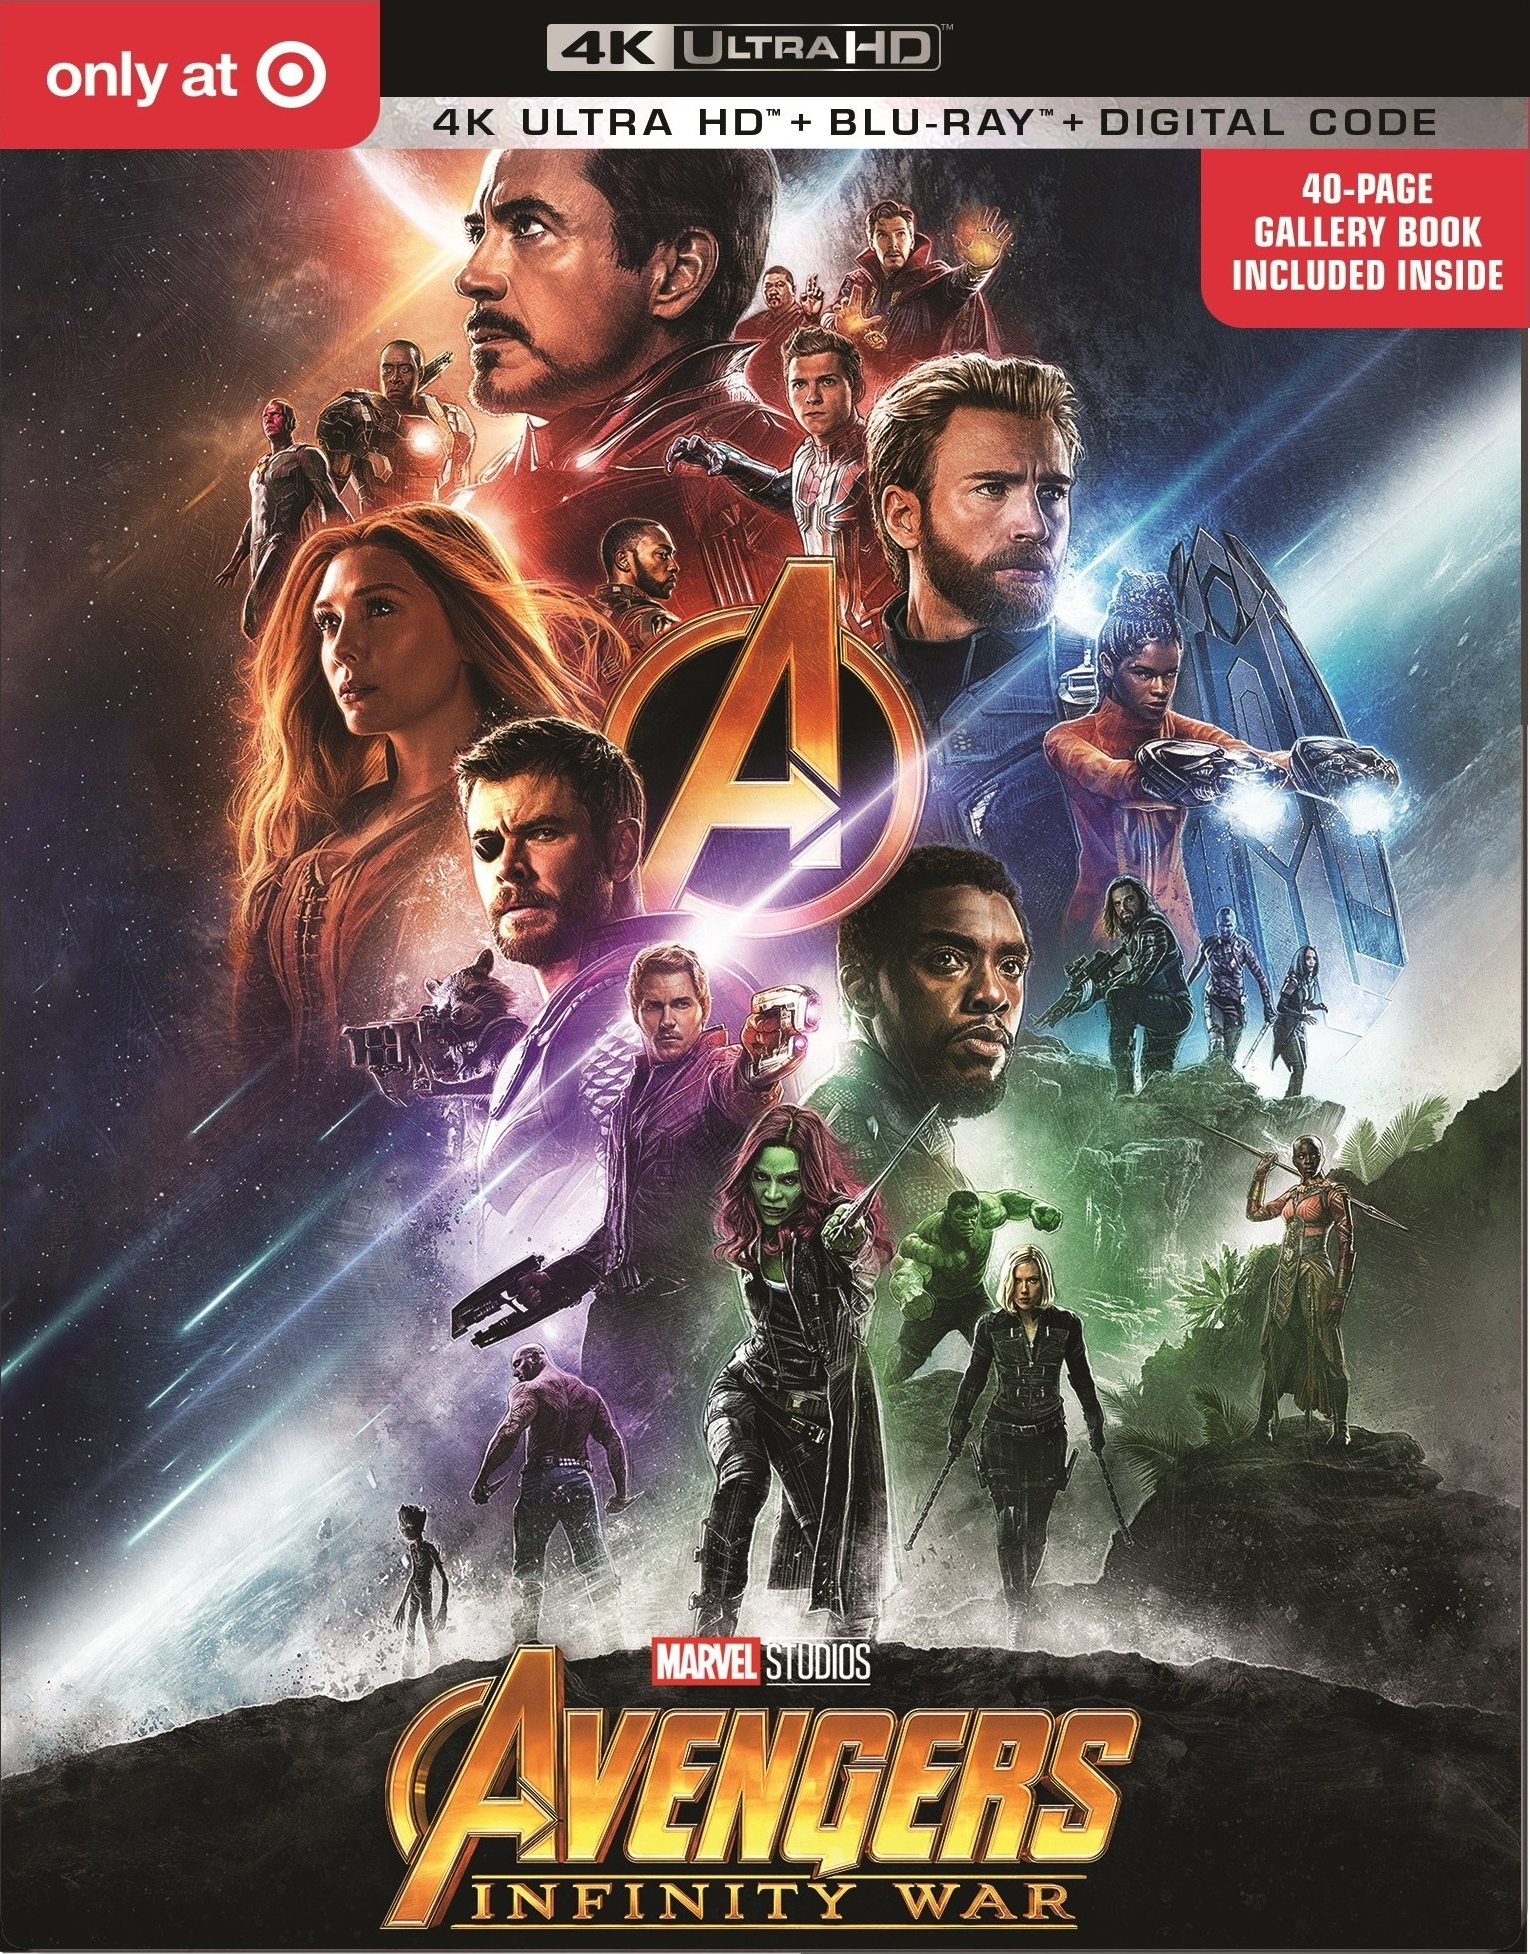 Avengers Infinity War Home Video Release Officially Announced Get